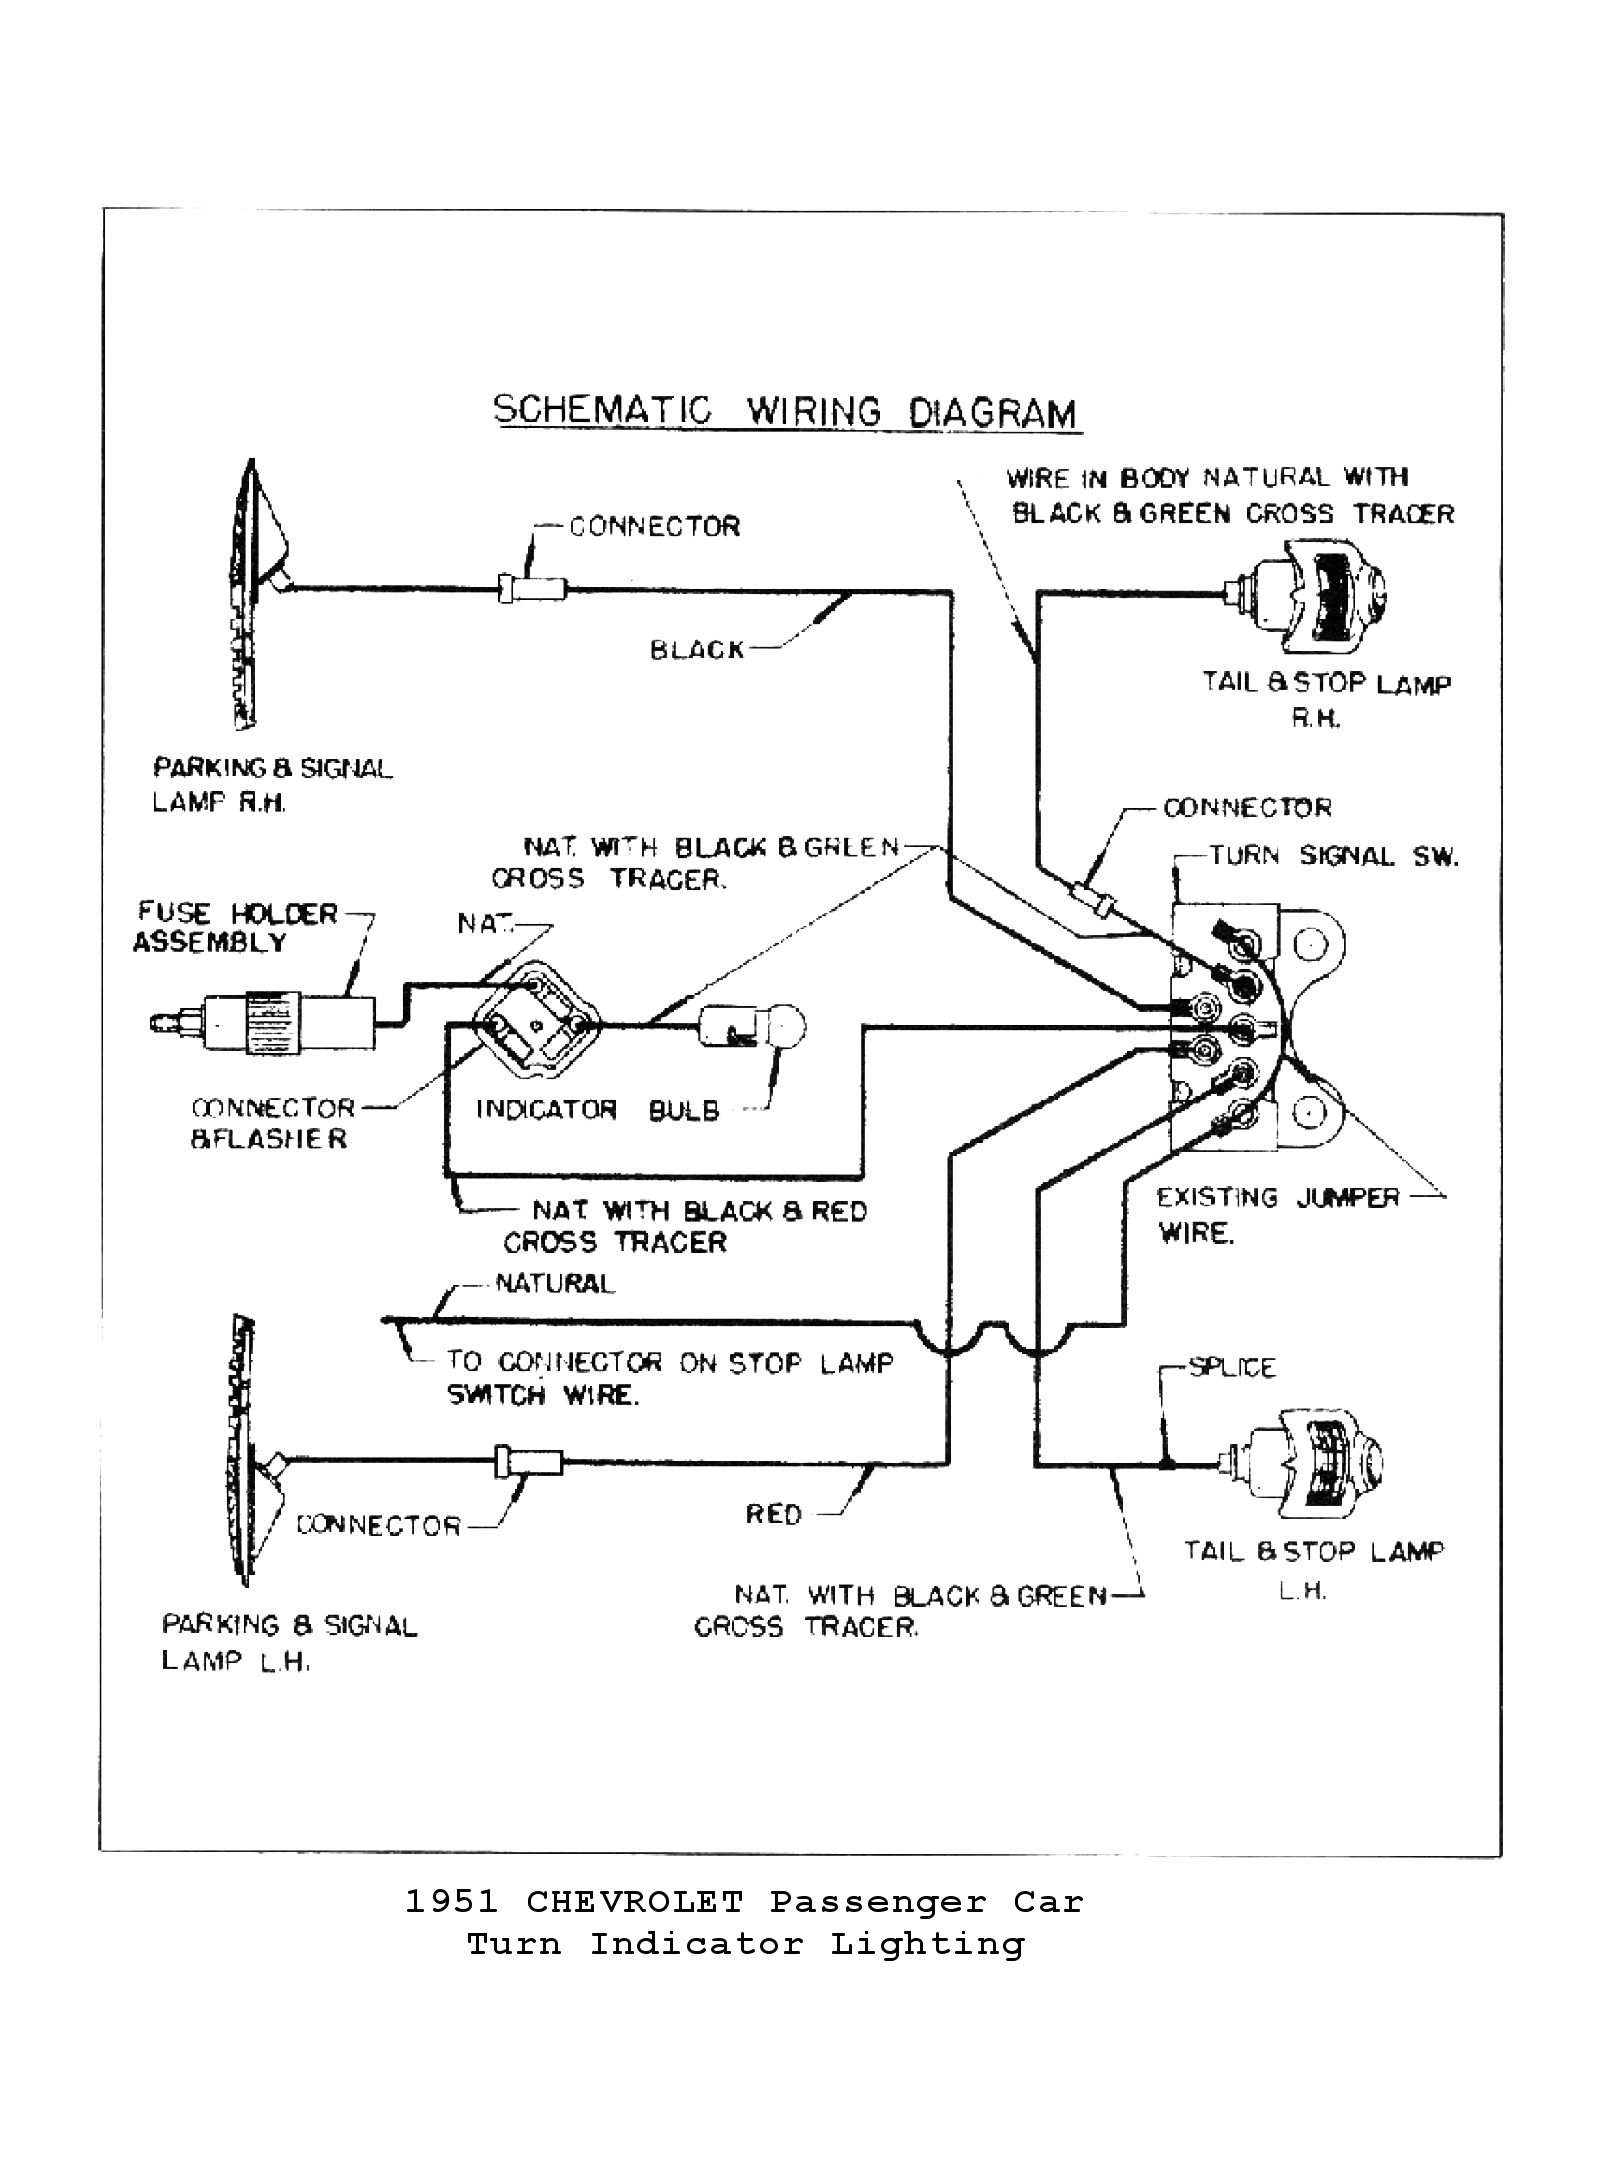 Wire Diagram besides Car besides Ford All Models Wiring Diagram together with Turn Signal Wiring Diagram besides F E C D Vehicle Accessories Jeep Xj. on 1954 chevy truck wiring diagram turn signals